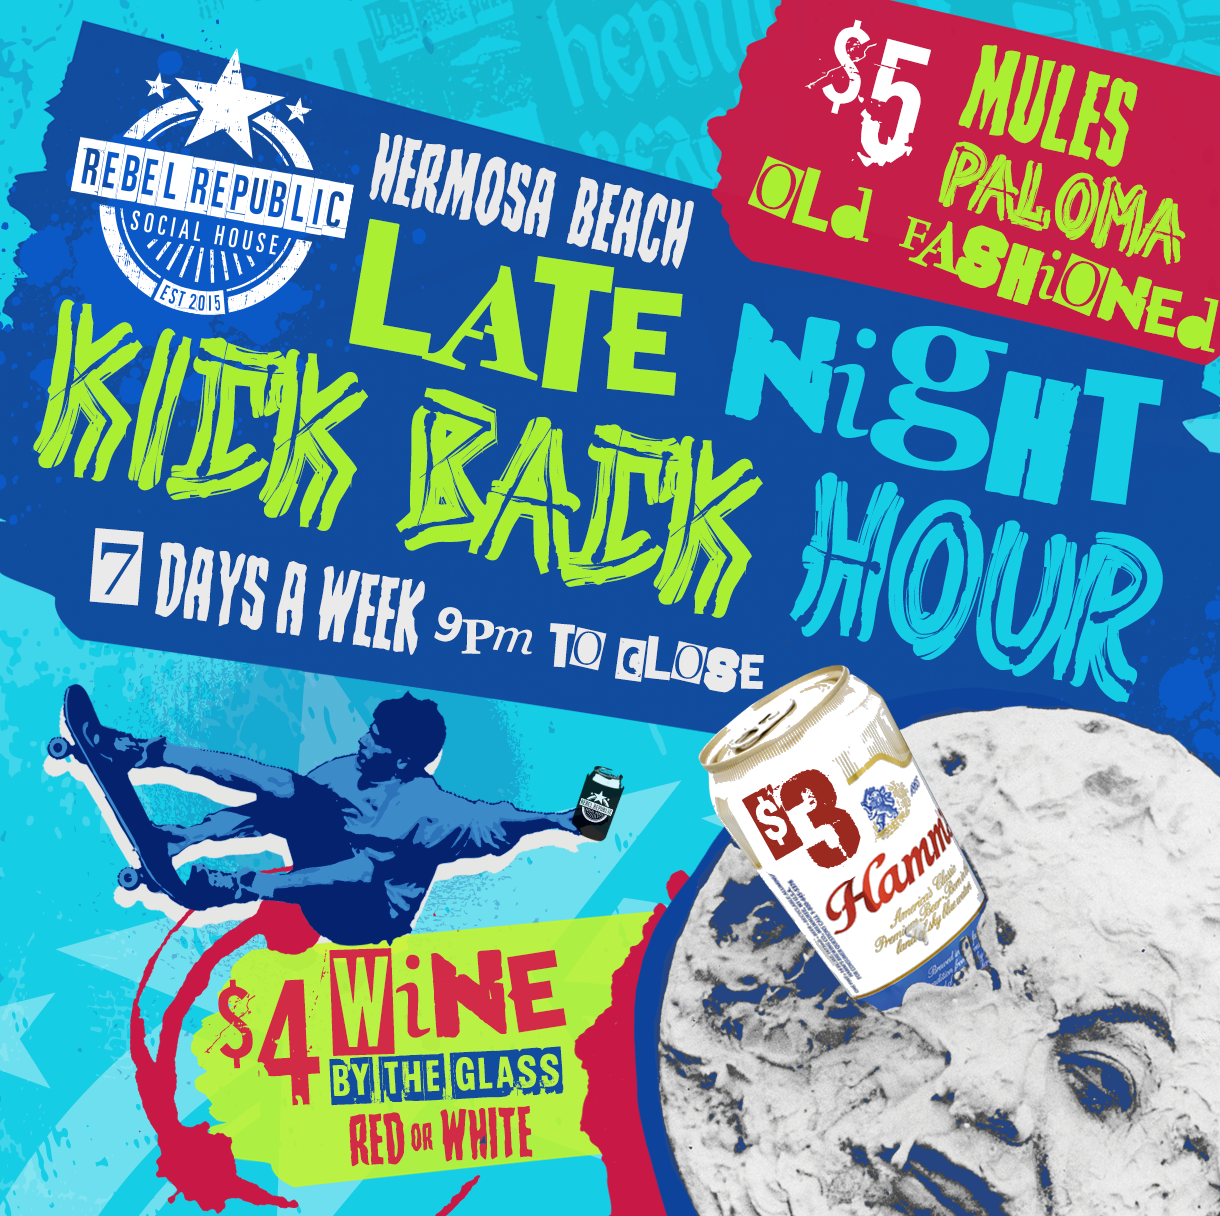 Late Night Kick Back Hour - 7 DAYS A WEEK | 9PM TO CLOSE$3 HAMM'S BEER$4 WINE BY THE GLASS | Red or White$5 MULES | PALOMA | OLD FASHIONEDAvailable ONLY at Hermosa Location73 Pier Ave | Hermosa Beach | 424-348-0800